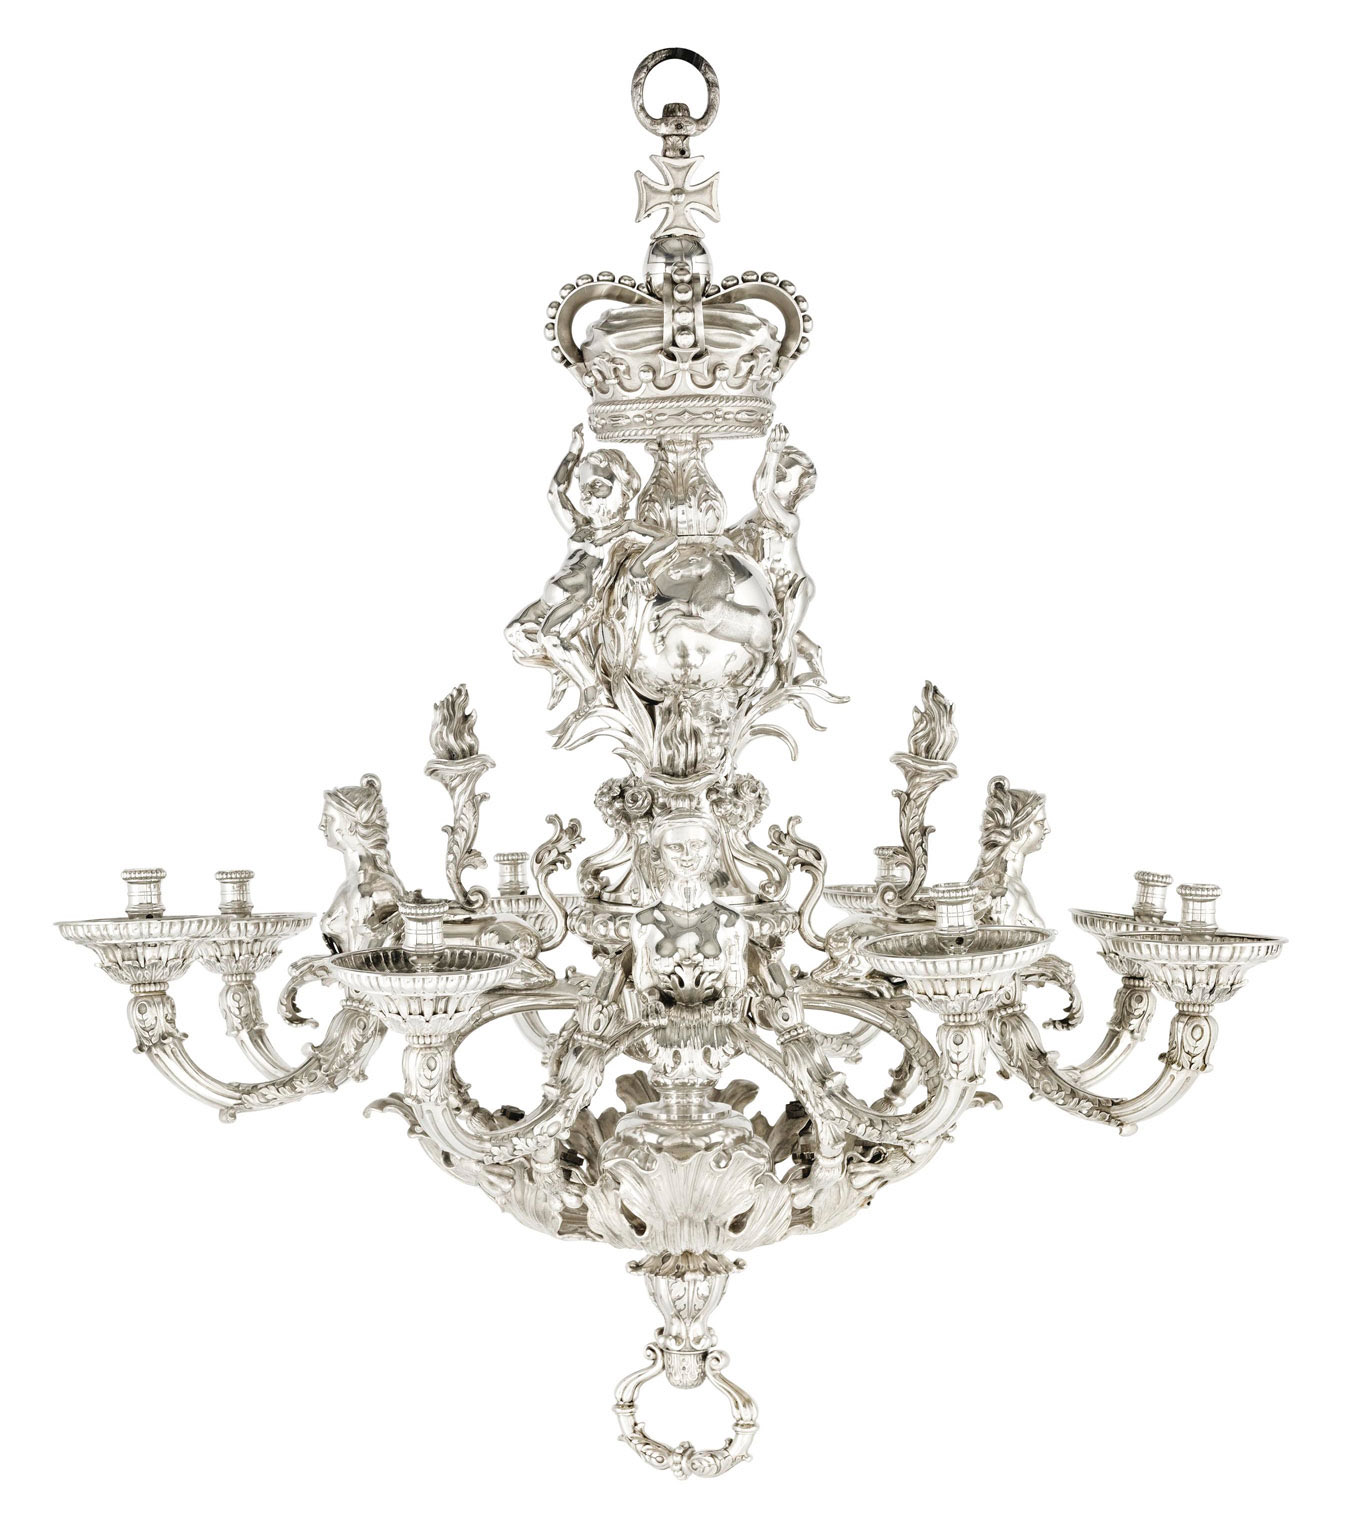 THE GIVENCHY ROYAL HANOVER CHANDELIER A GERMAN SILVER EIGHT-LIGHT CHANDELIER